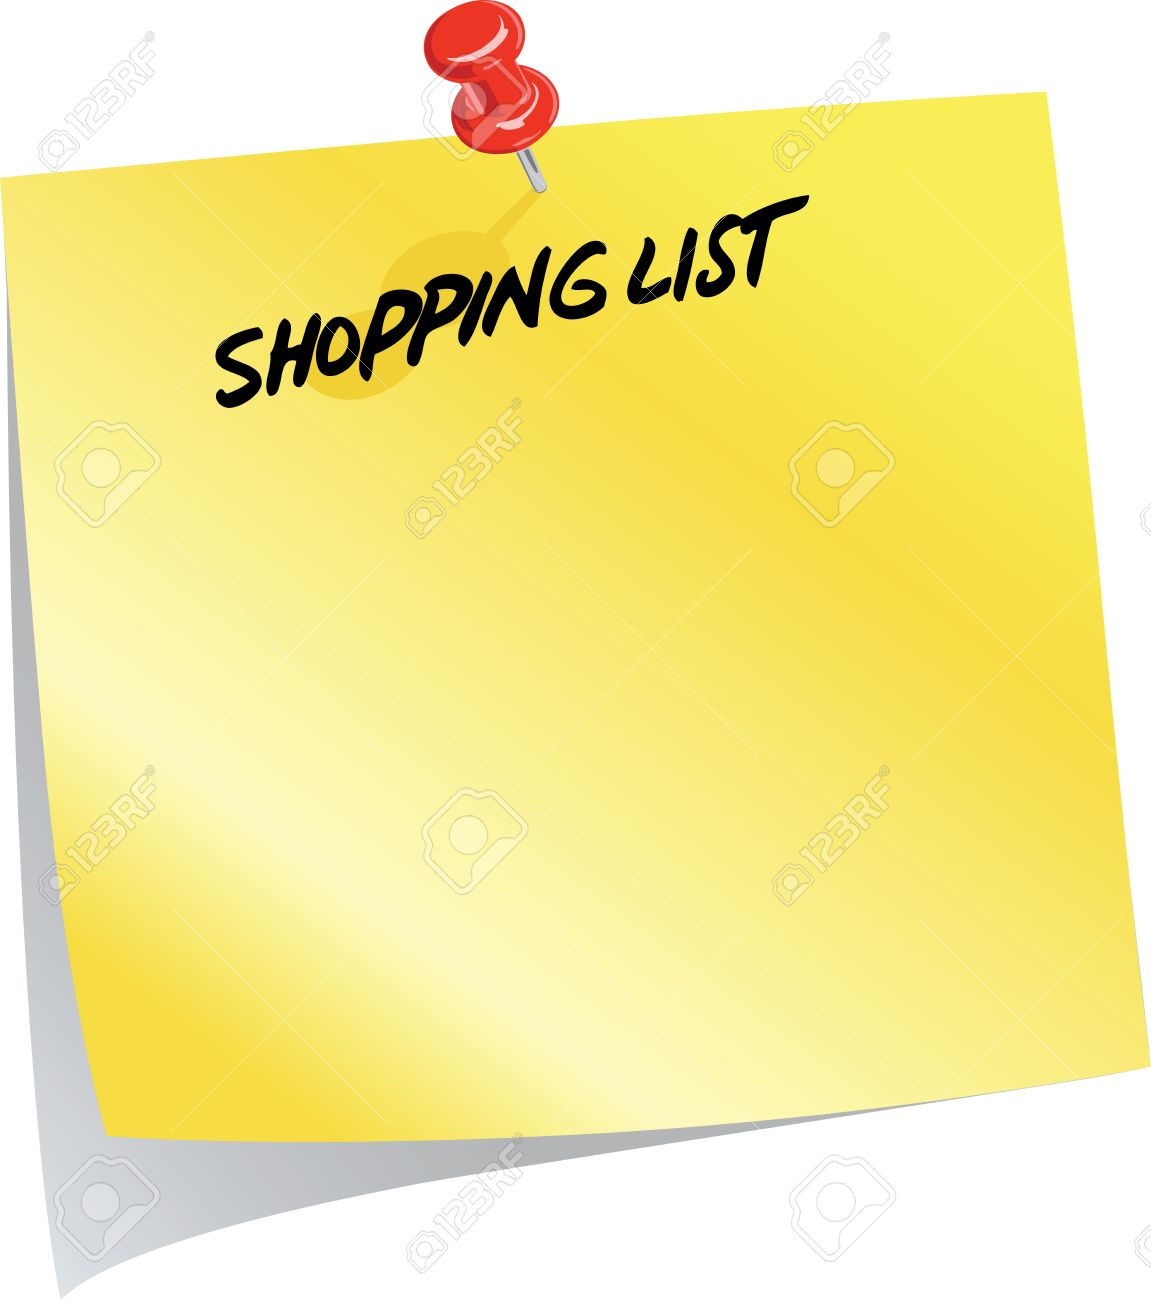 Shopping List | Shopping List Royalty Free Cliparts Vectors And Stock Illustration